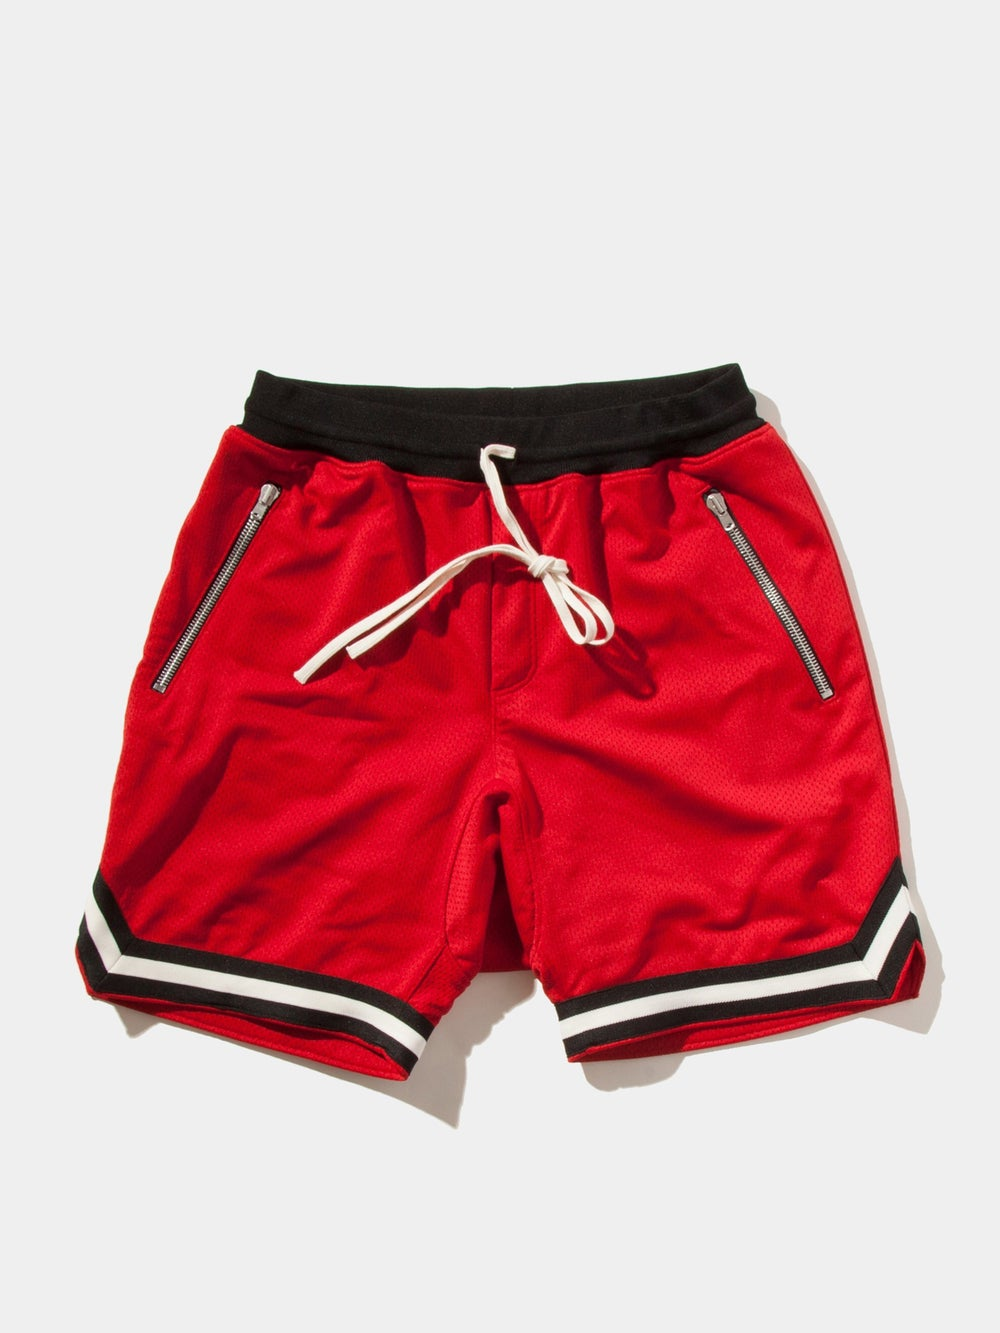 FEAR OF GOD MESH DROP CROTCH SHORTS FIFTH COLLECTION 'RED'